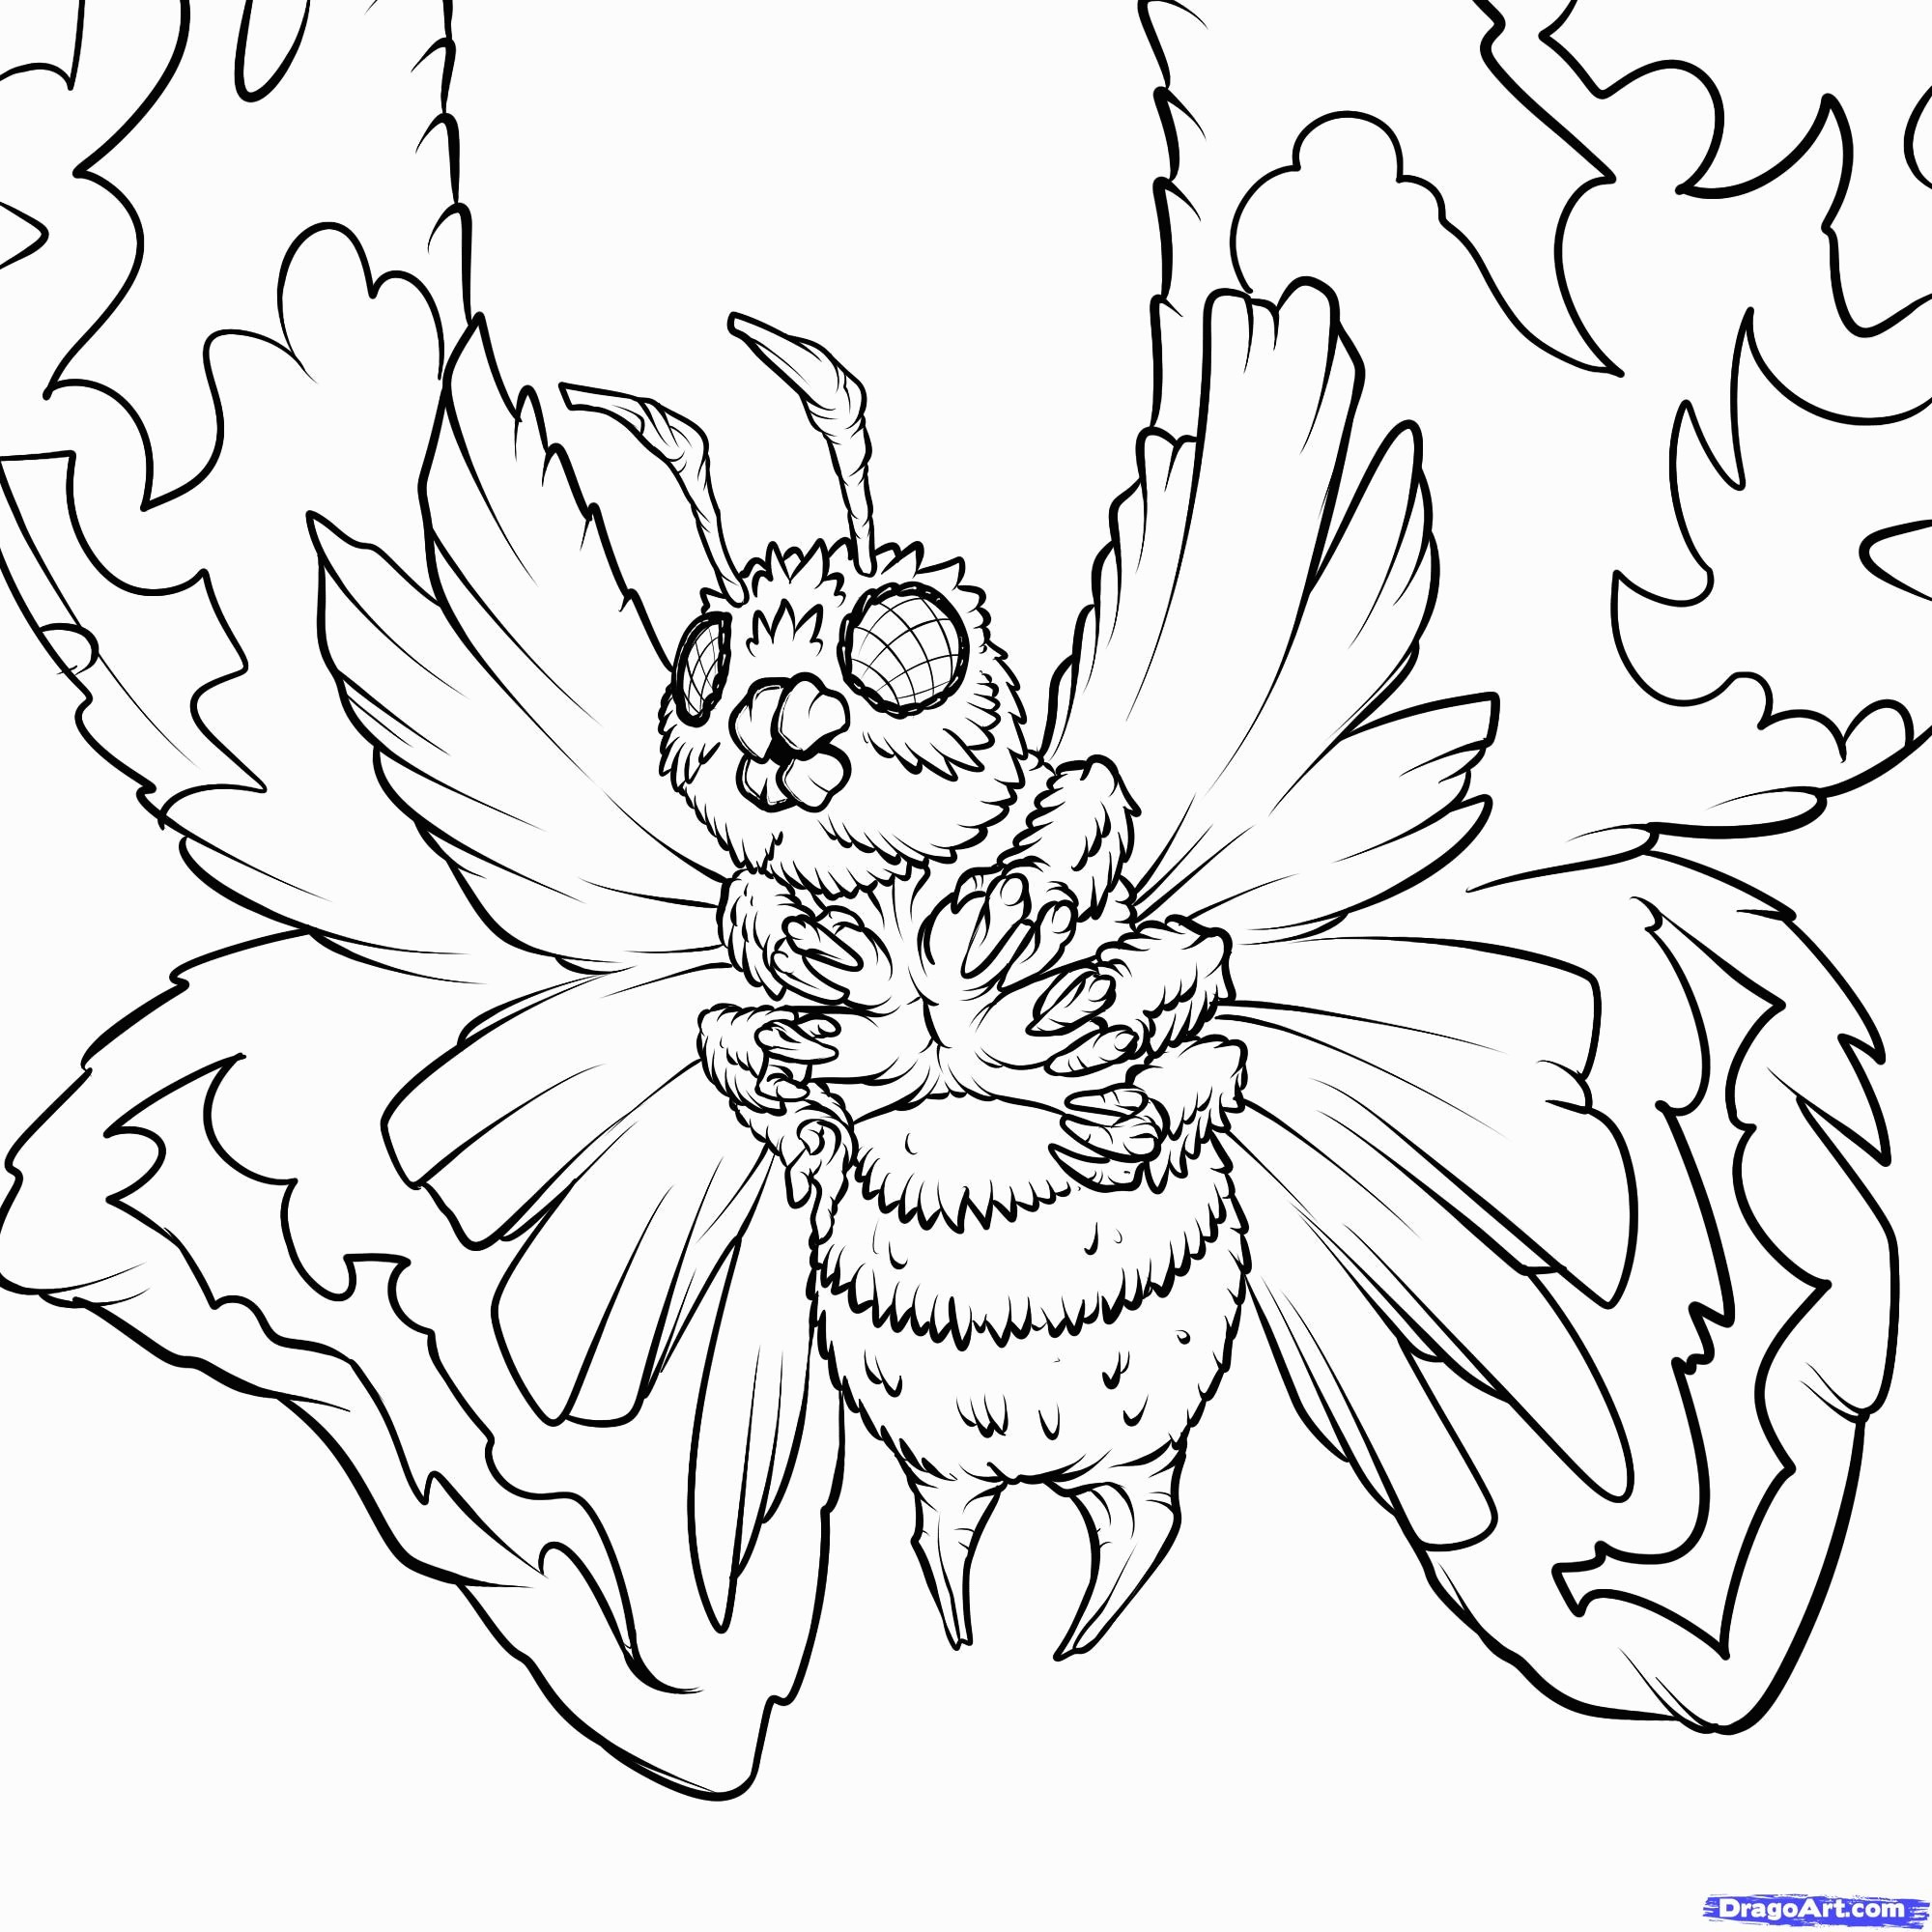 2000x2000 Baby Godzilla Coloring Pages Space